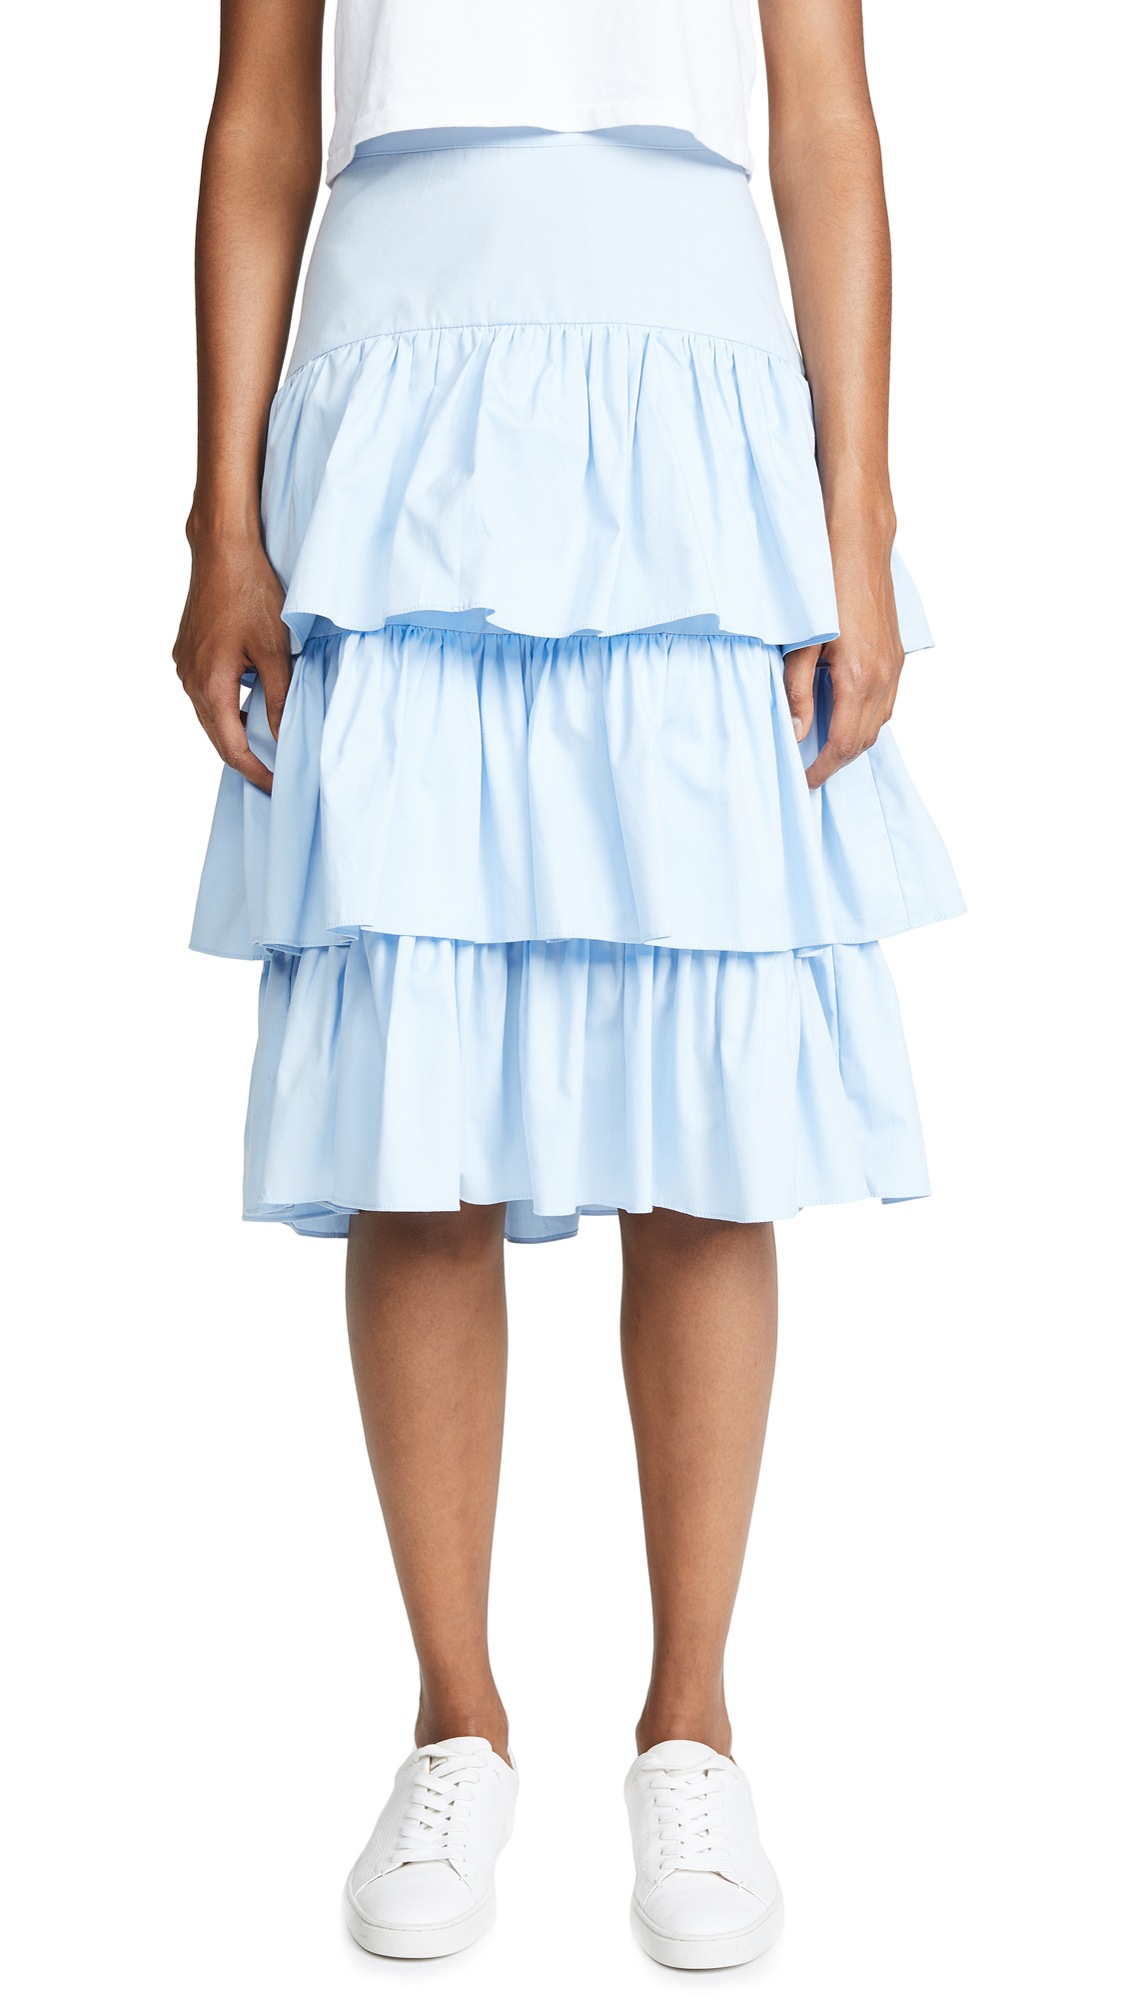 STYLEKEEPERS Holiday Skirt in Sky Blue